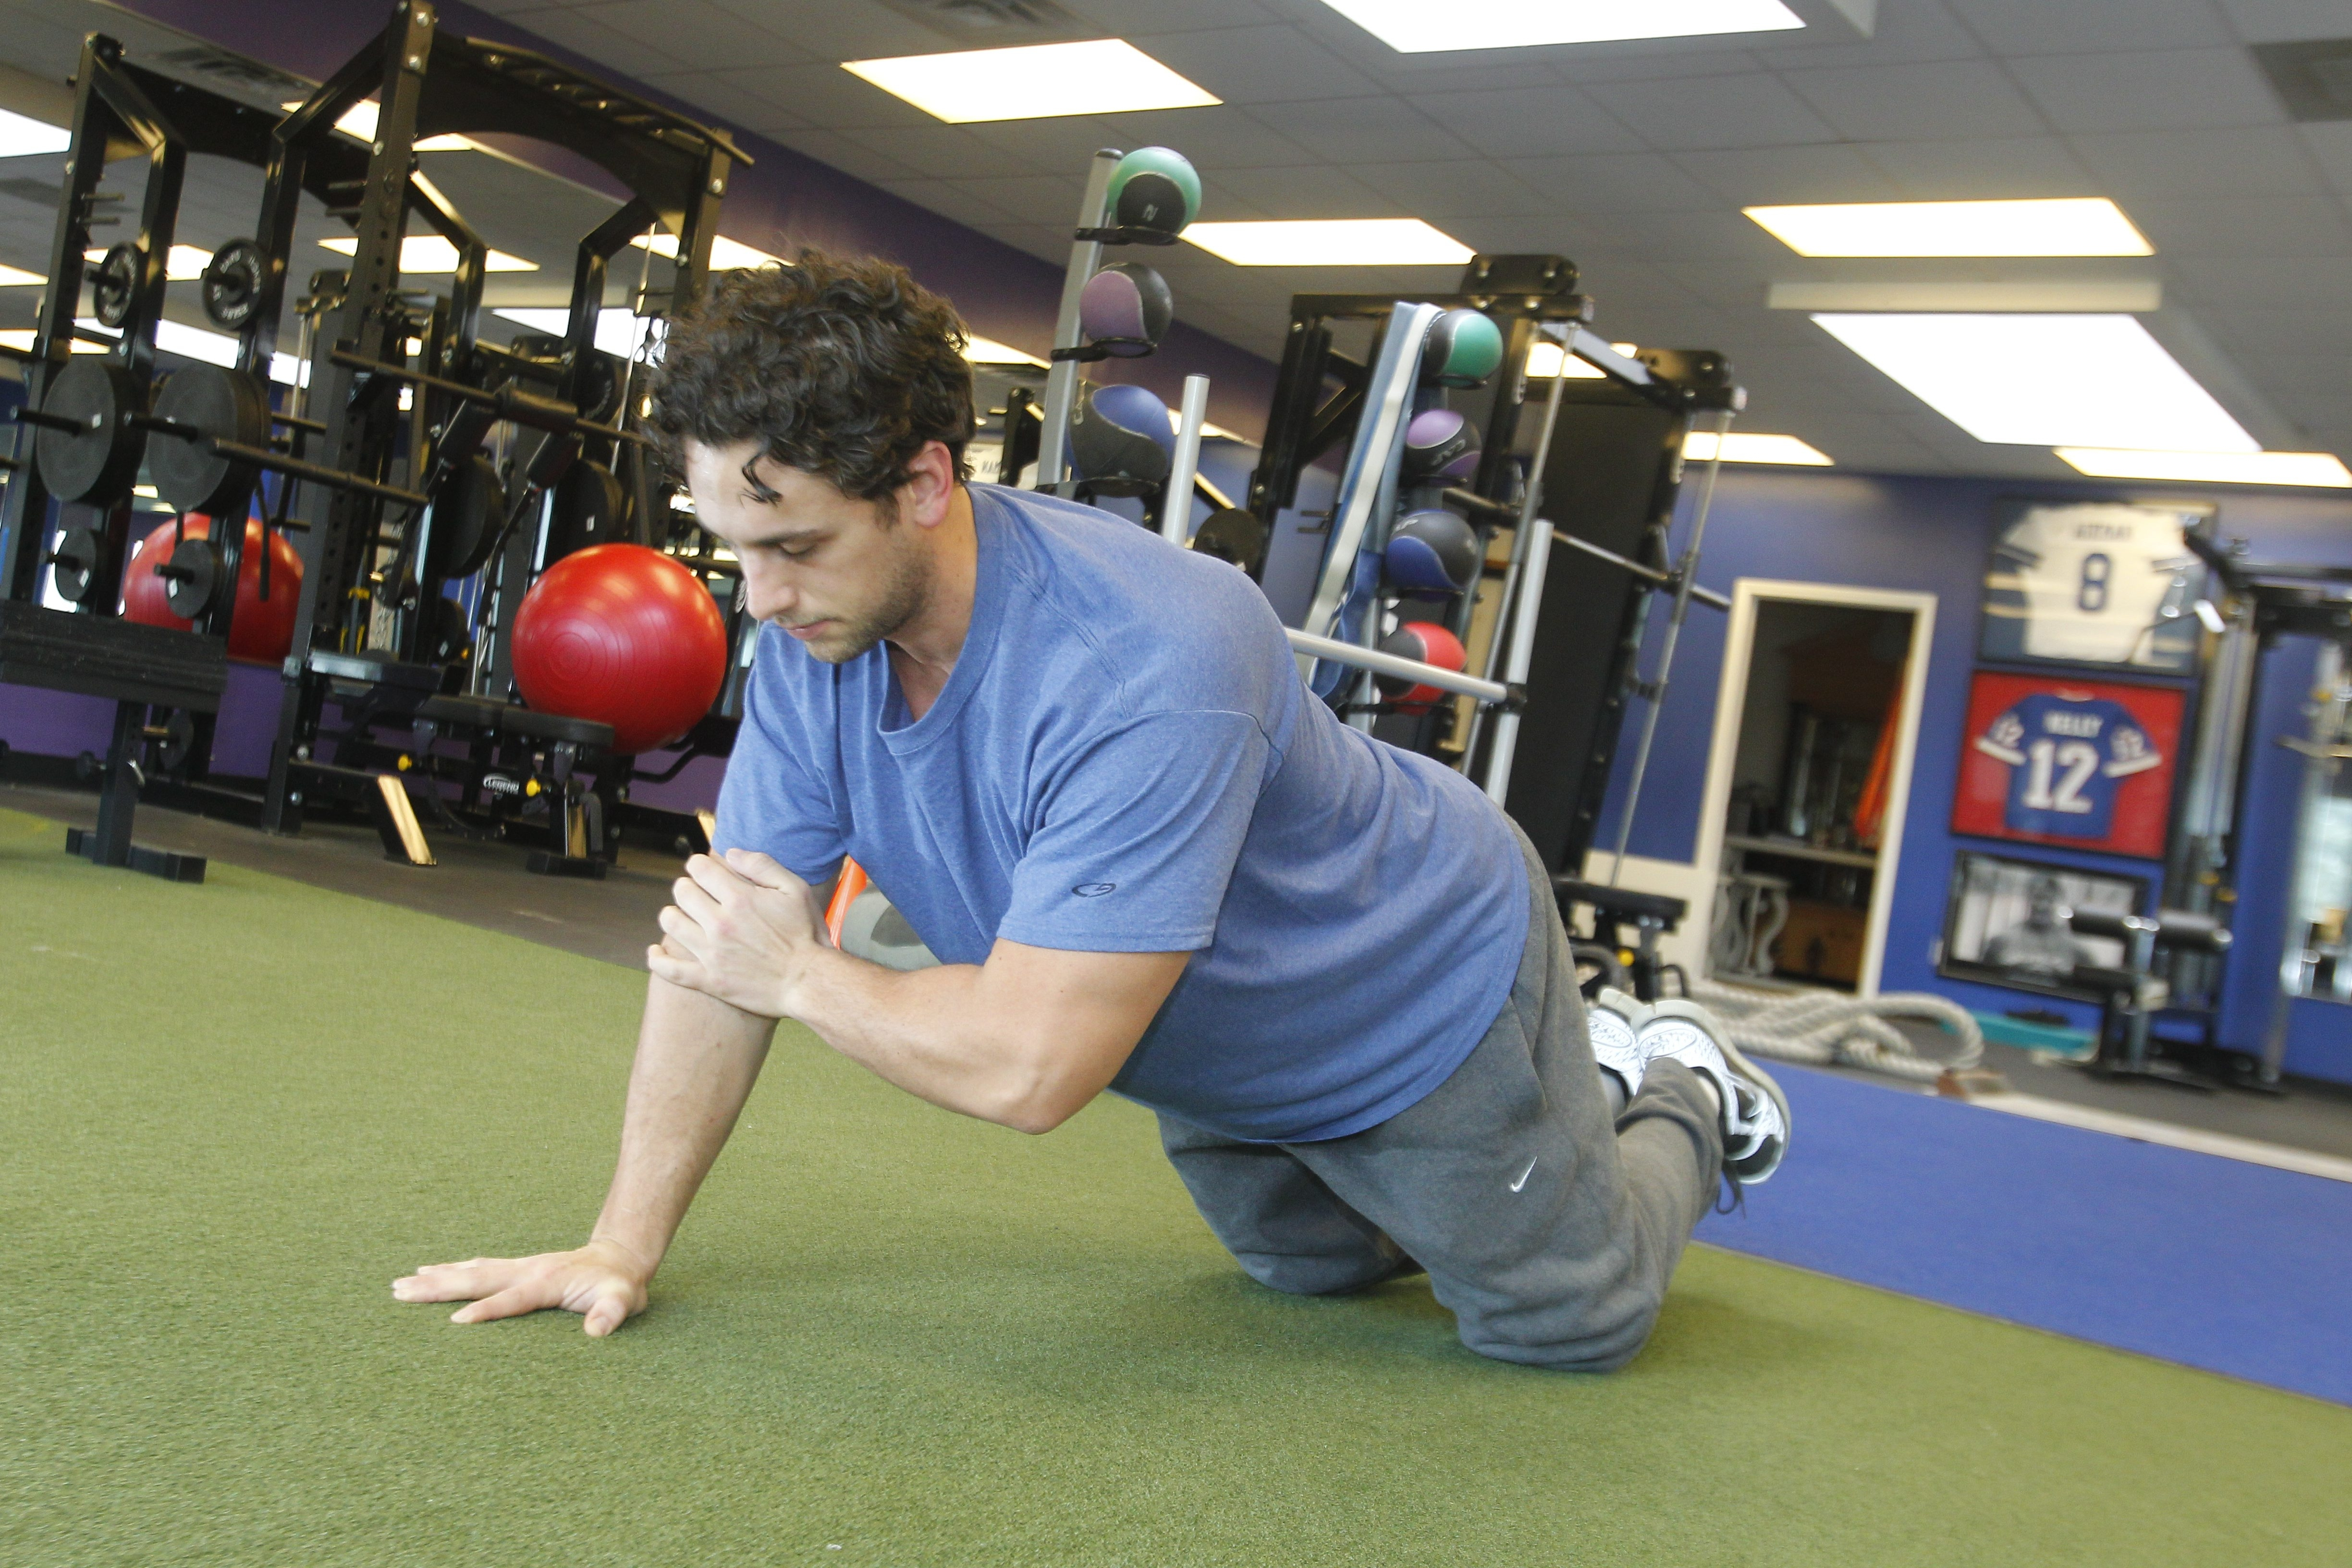 Fred Duncan does a pushup to elbow touch. It's one of many exercises to help prepare for outdoor activity.